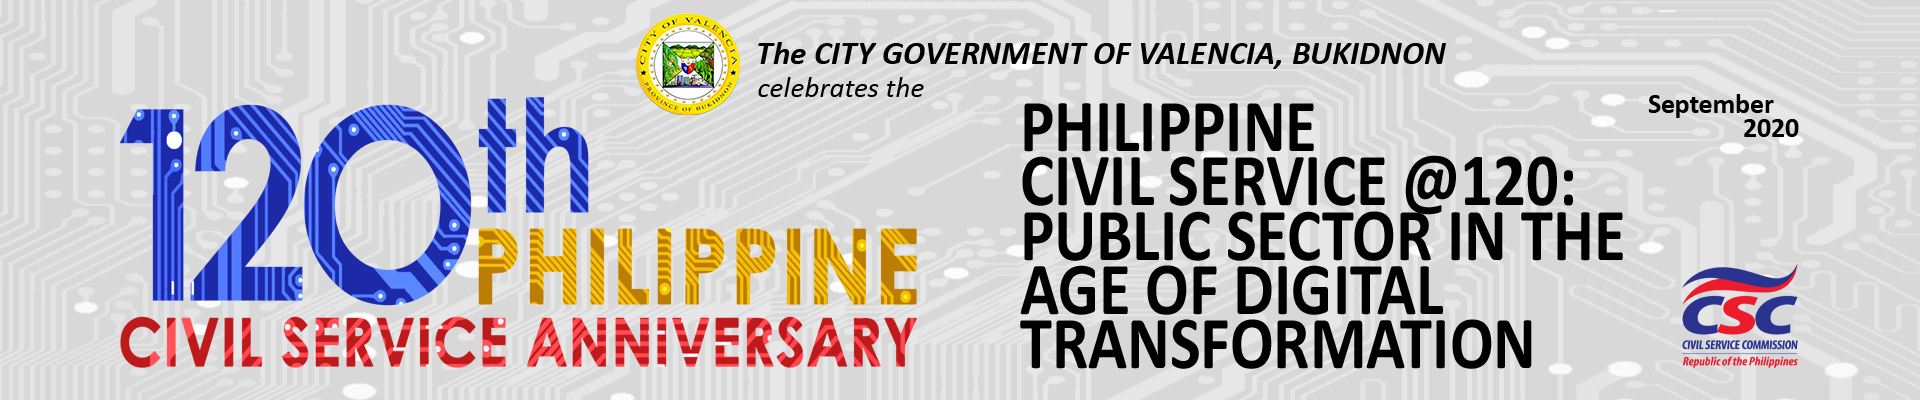 120th Civil Service Anniversary